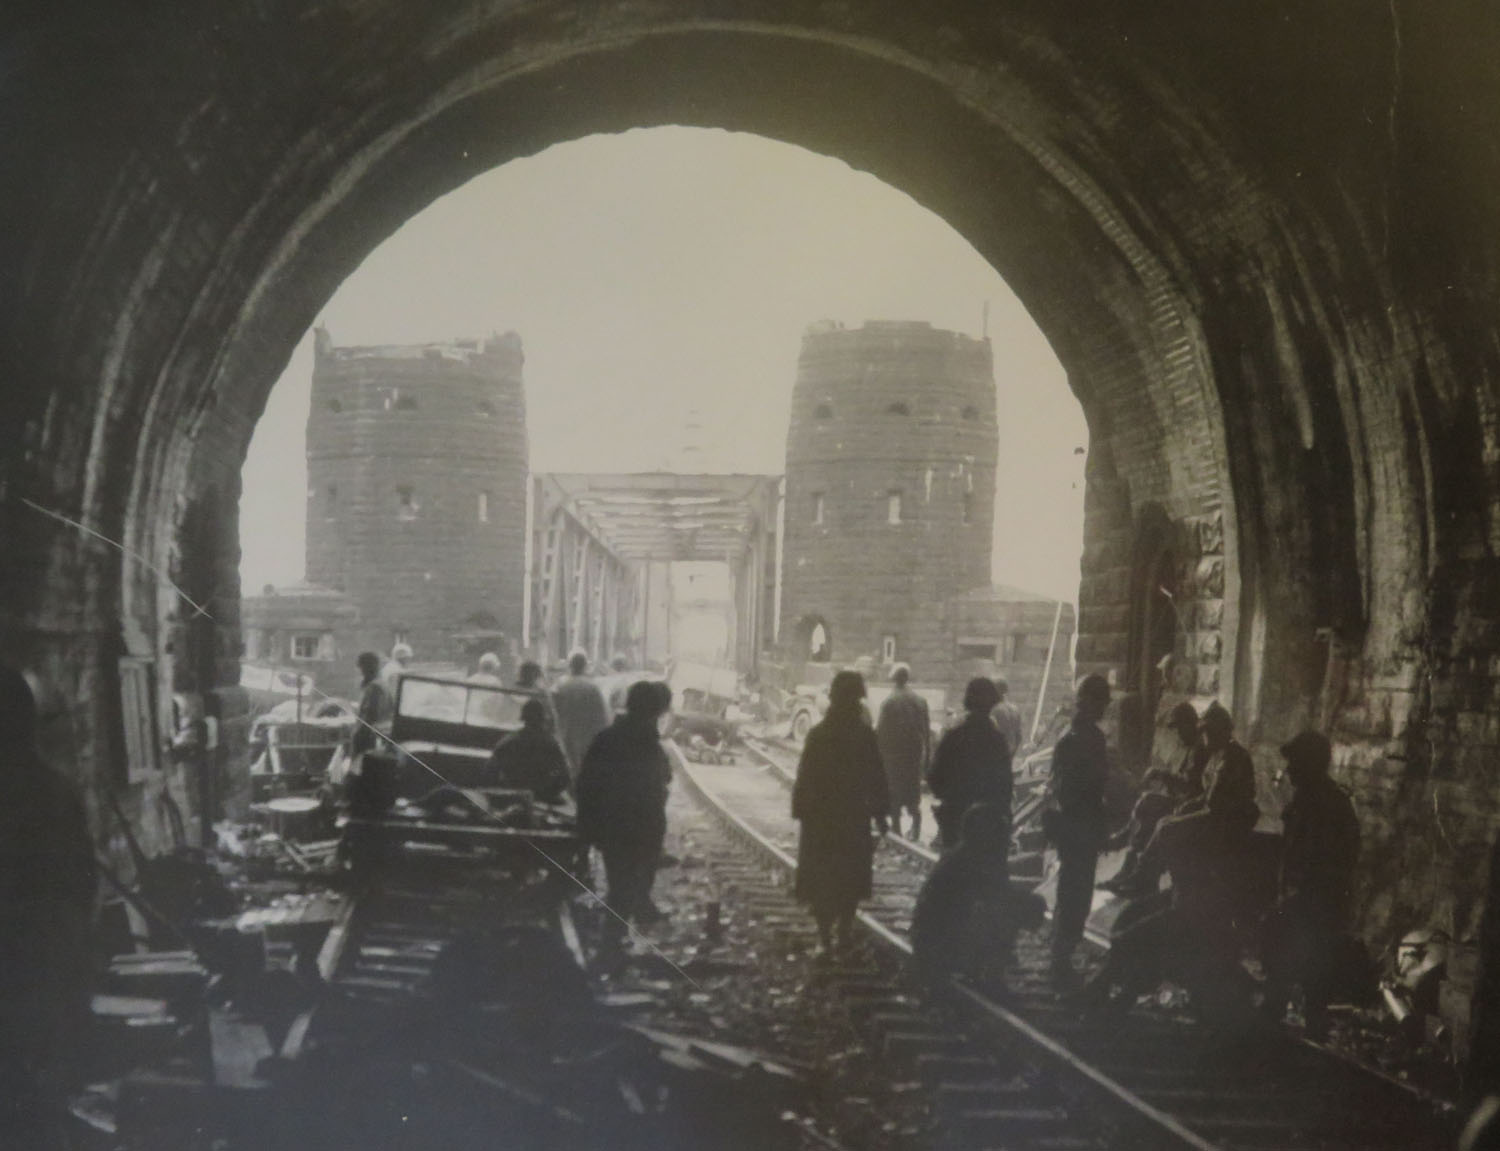 Germany-Bridge-At-Remagen-Peace-Museum-Photograph-From-Tunnel-On-East-Bank